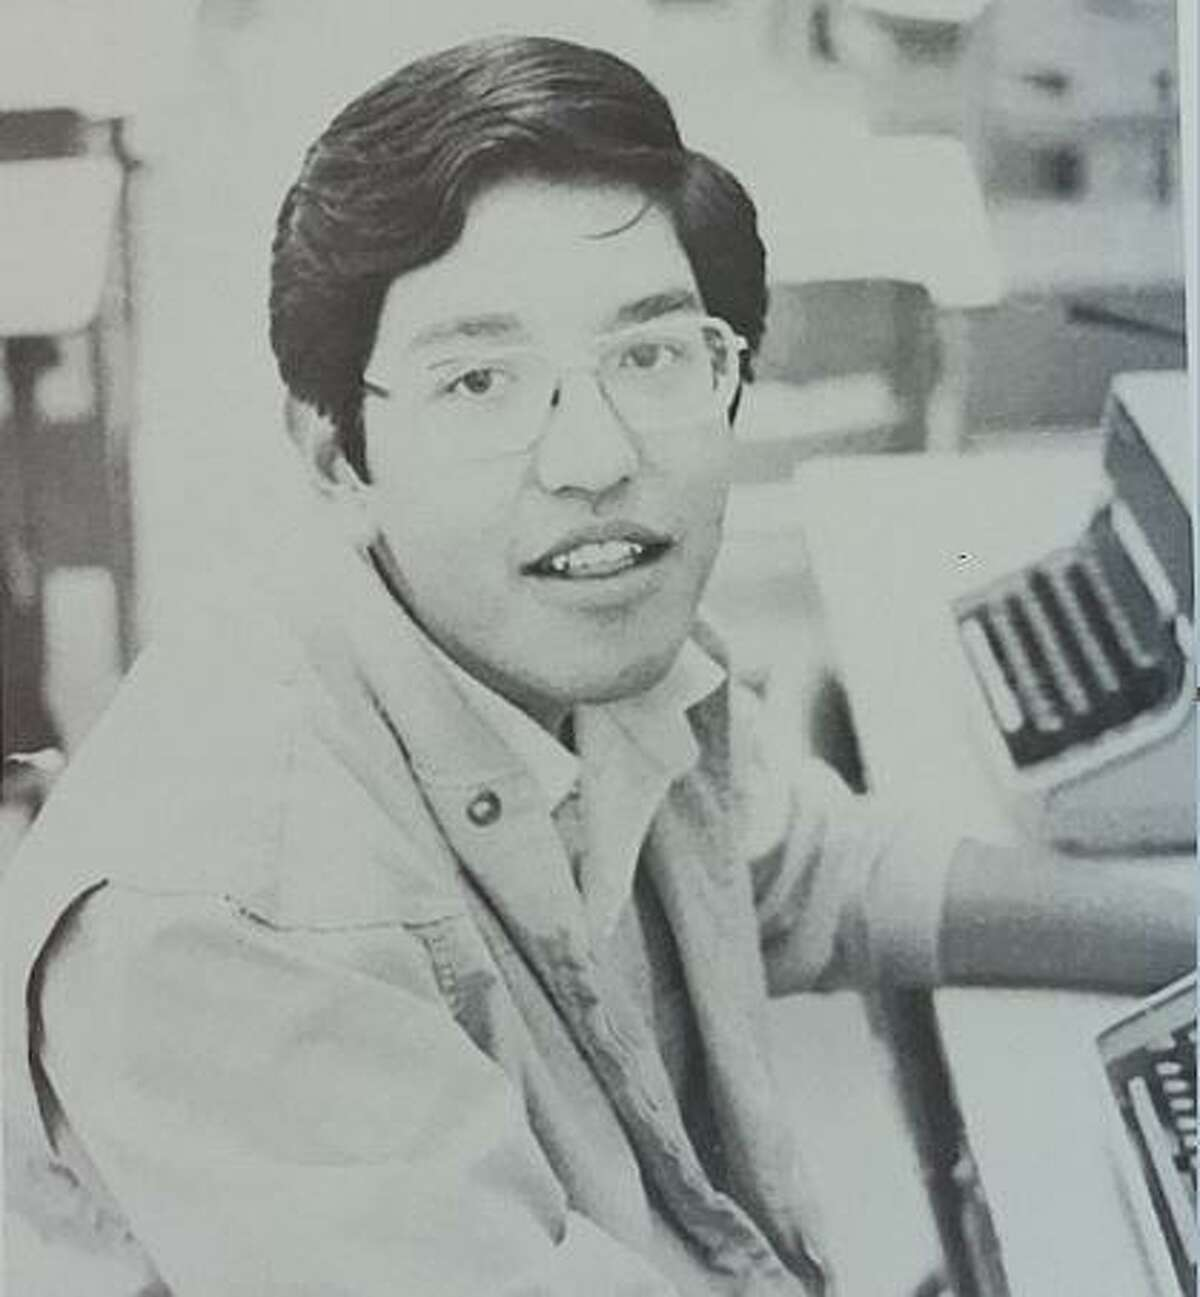 Houston Chronicle food editor Greg Morago attended Boys State in 1977 when he was a student at Casa Grande Union High School in Casa Grande, Ariz. He is shown here in his high school newspaper office.